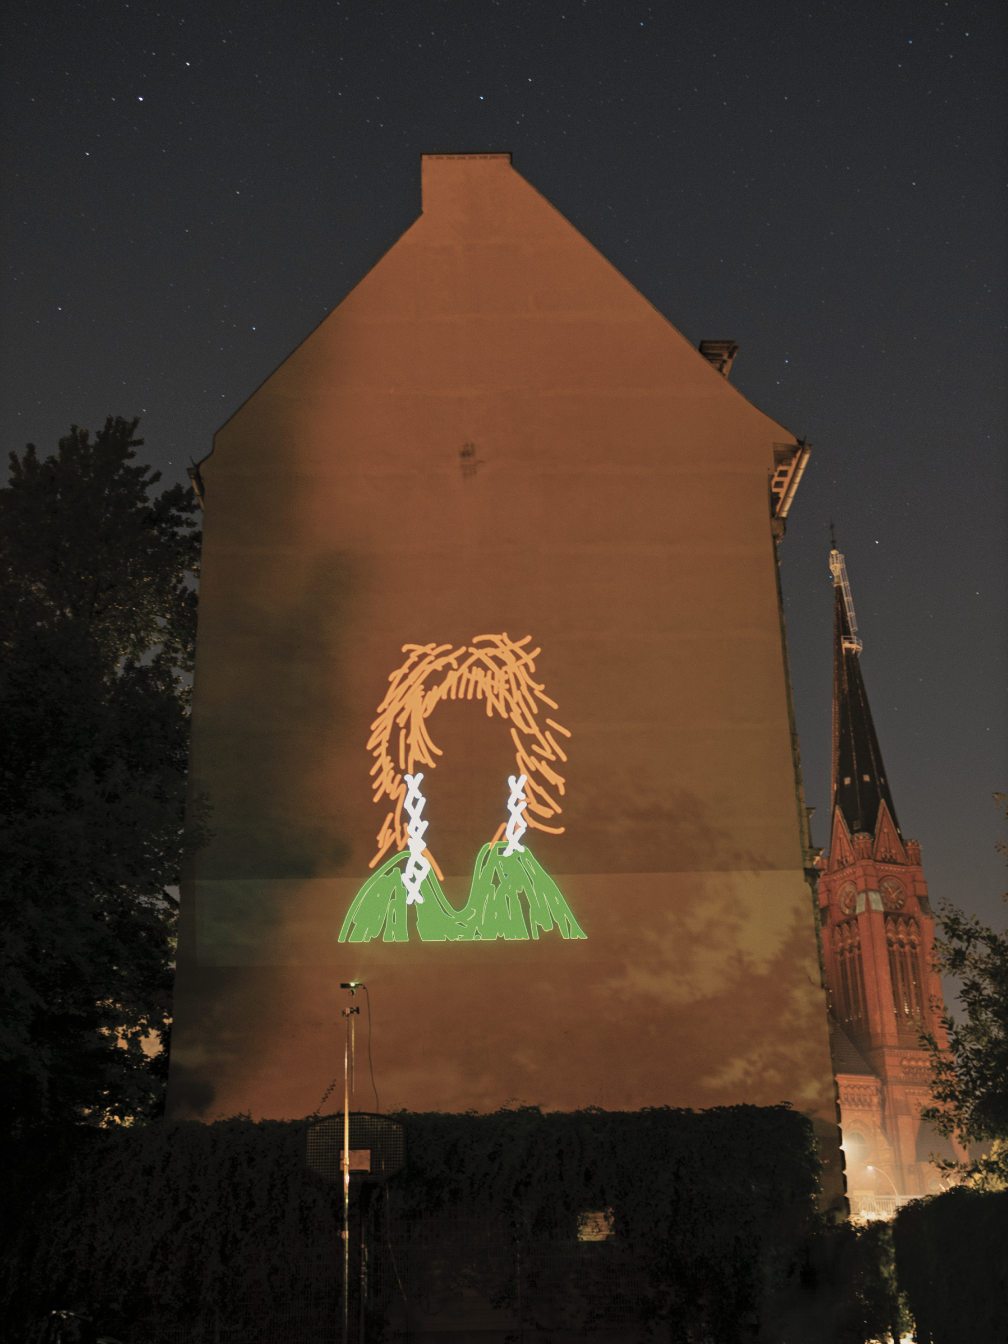 drawing projected on building